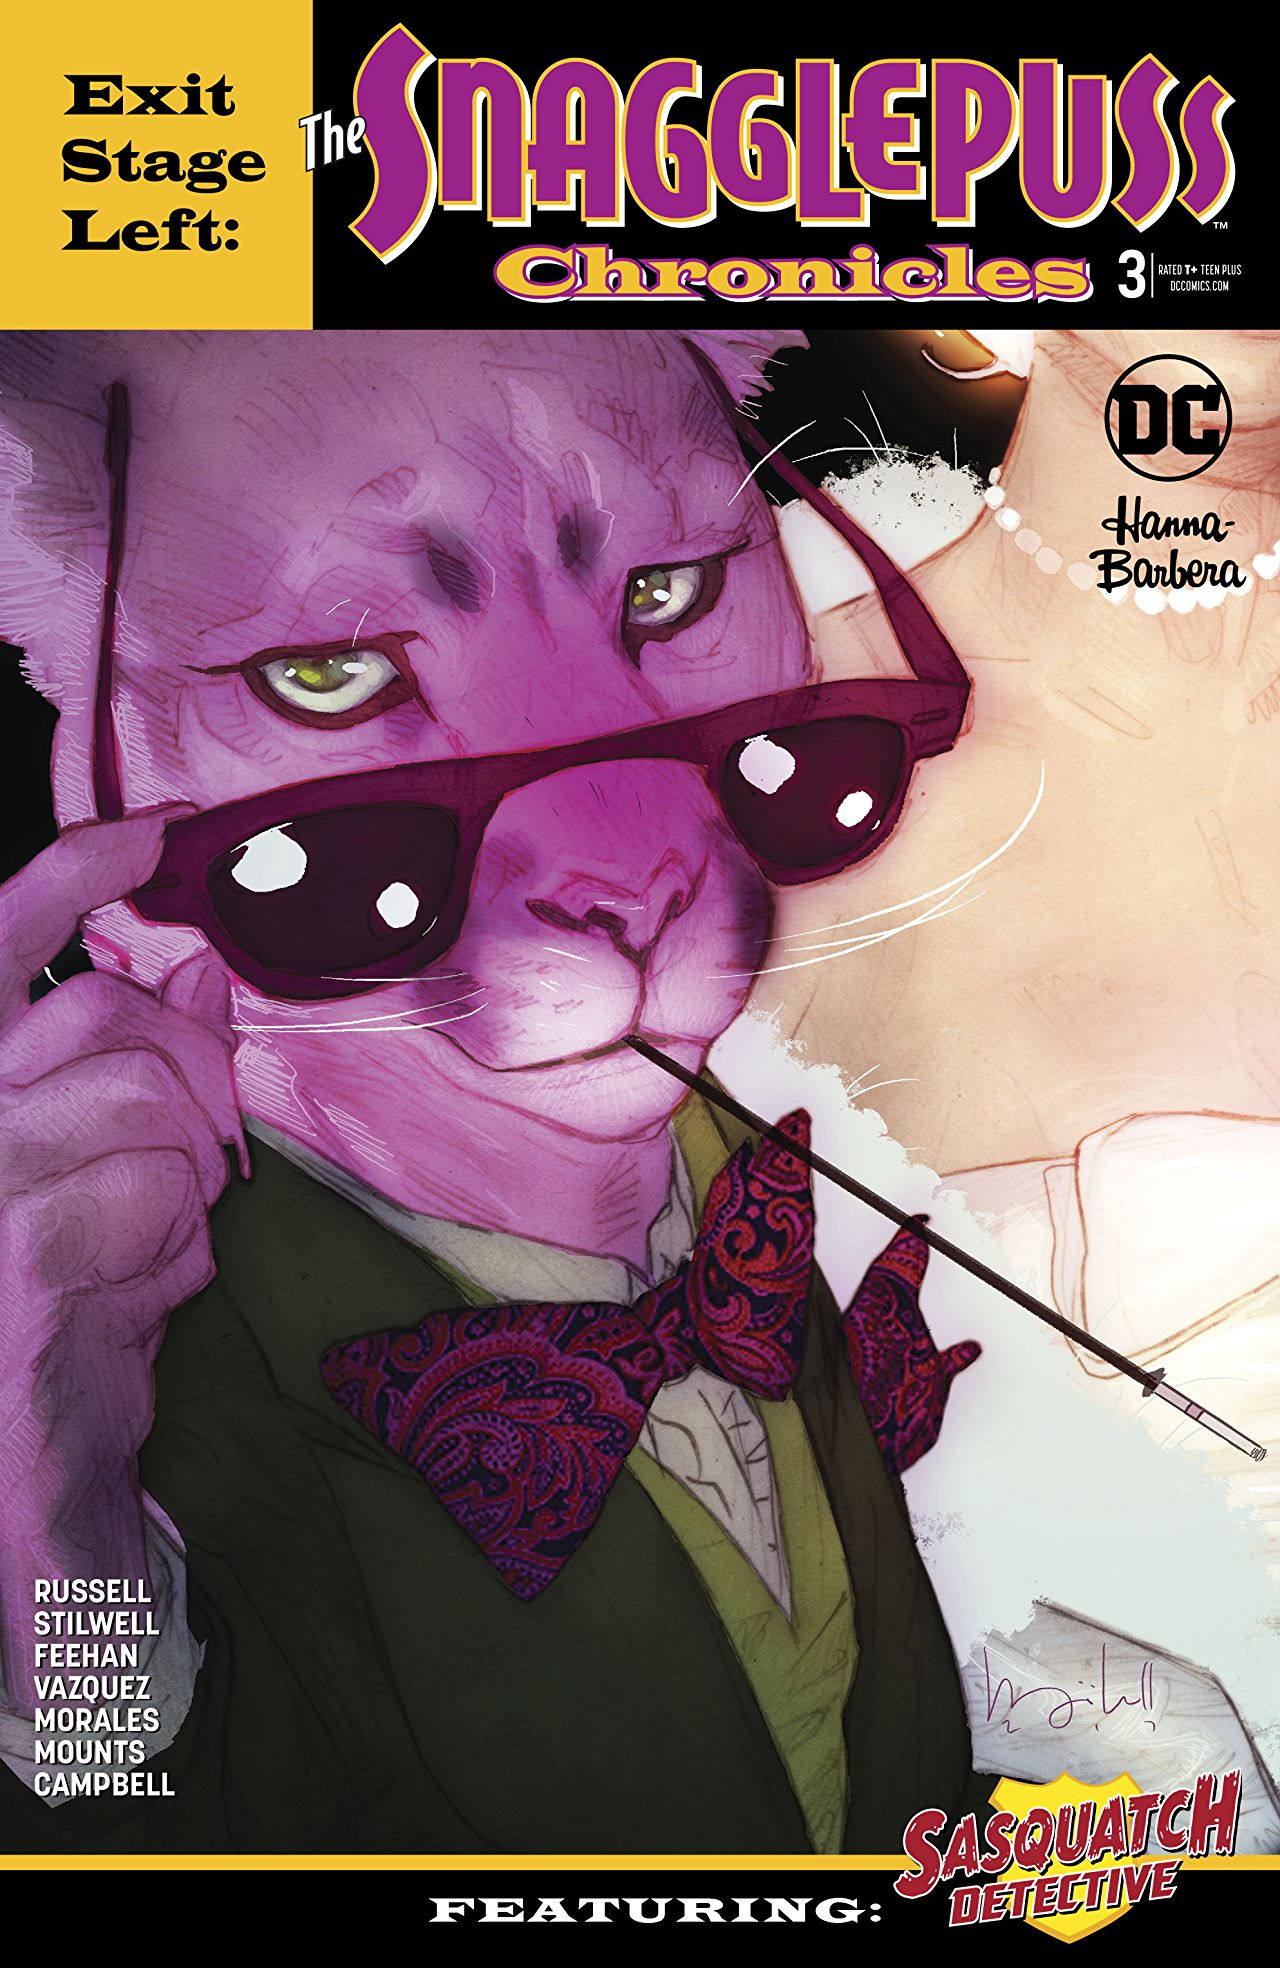 Exit Stage Left: The Snagglepuss Chronicles Vol 1 3